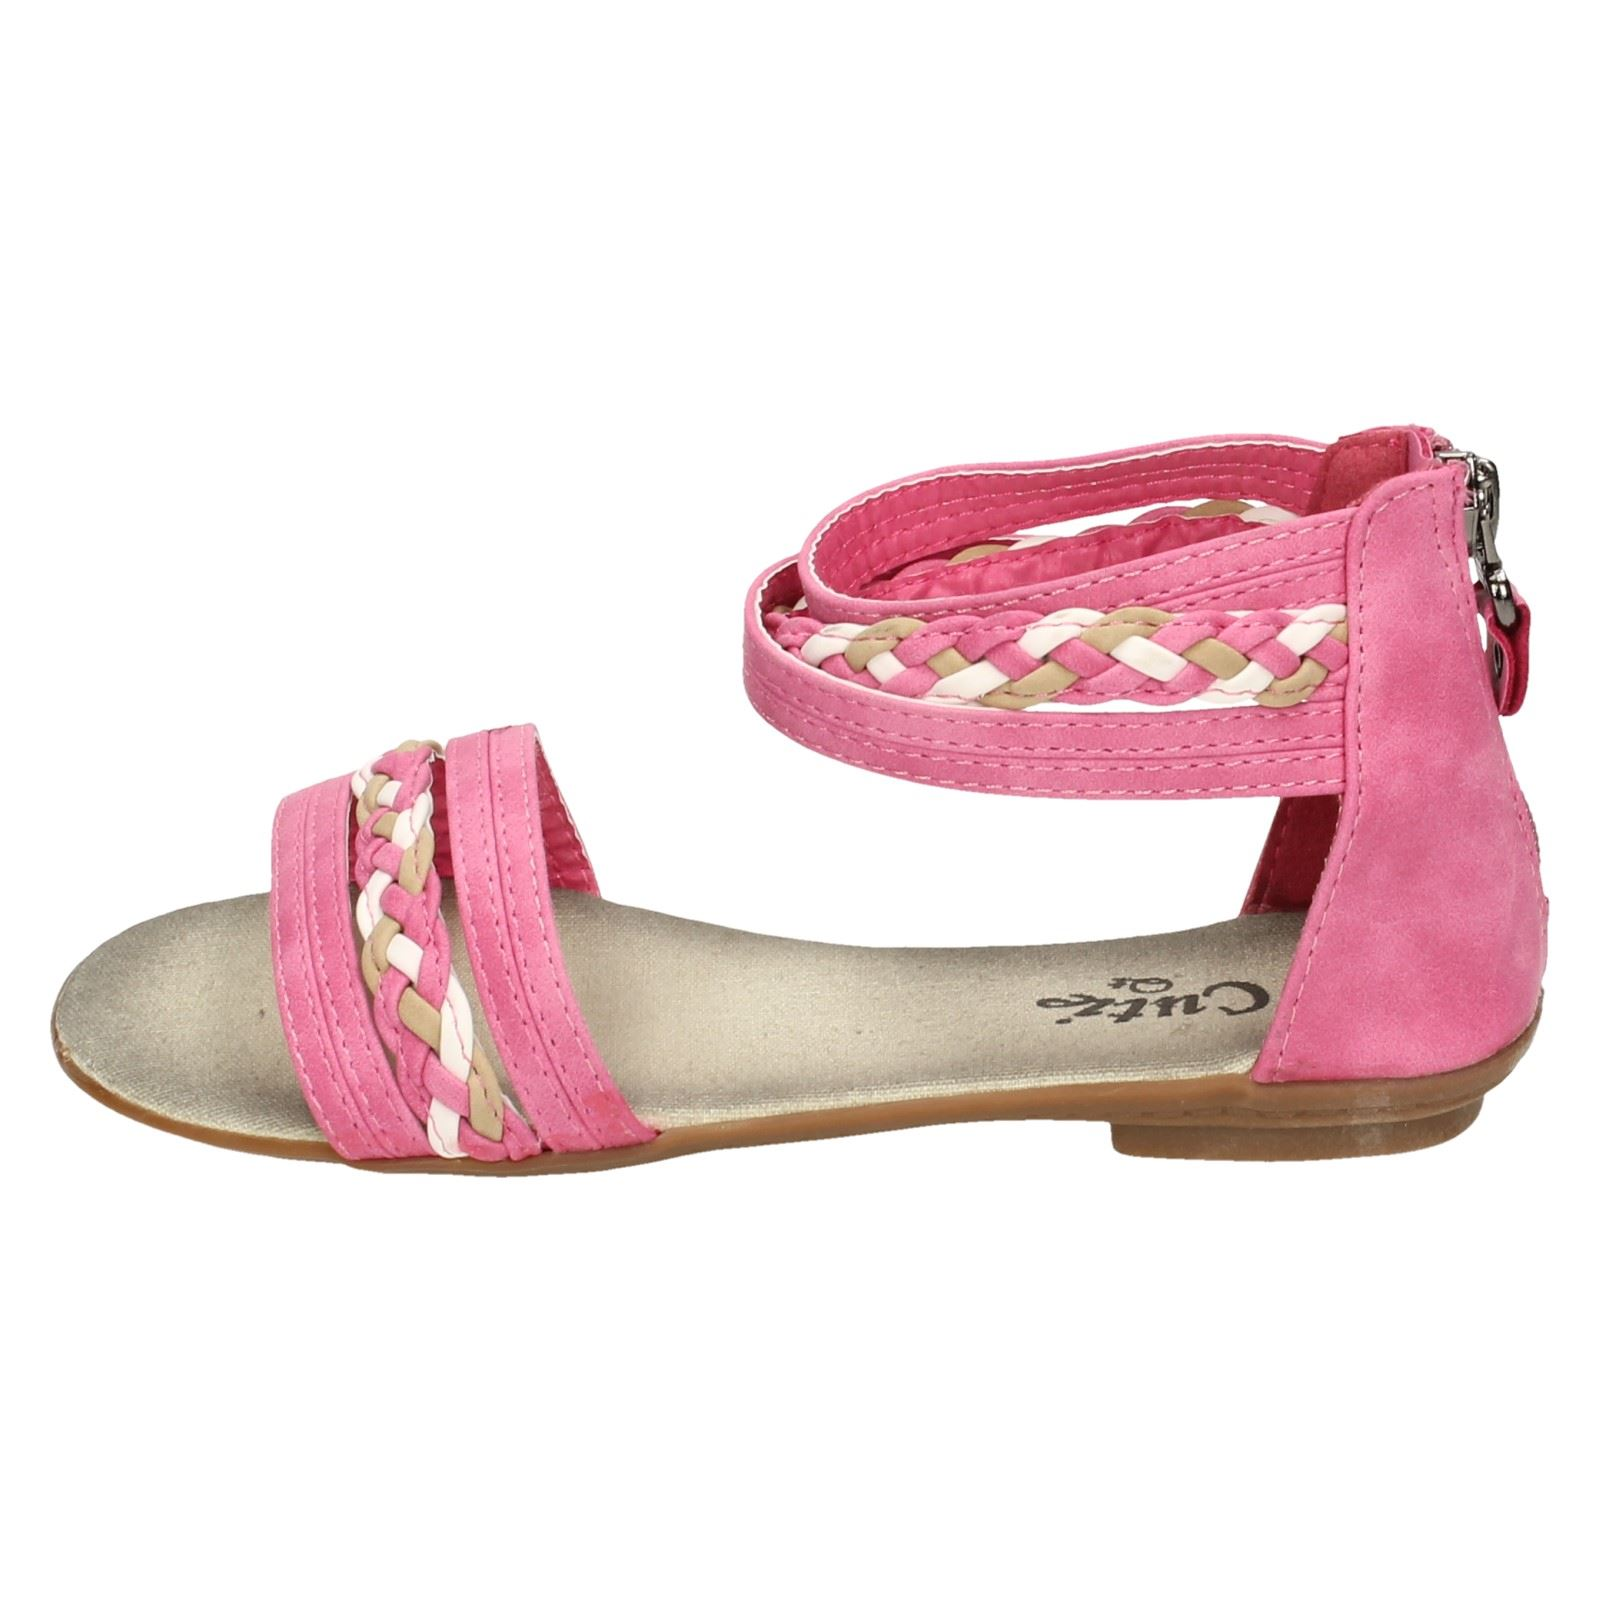 Cutie Girls Sandals with Ankle Cuff